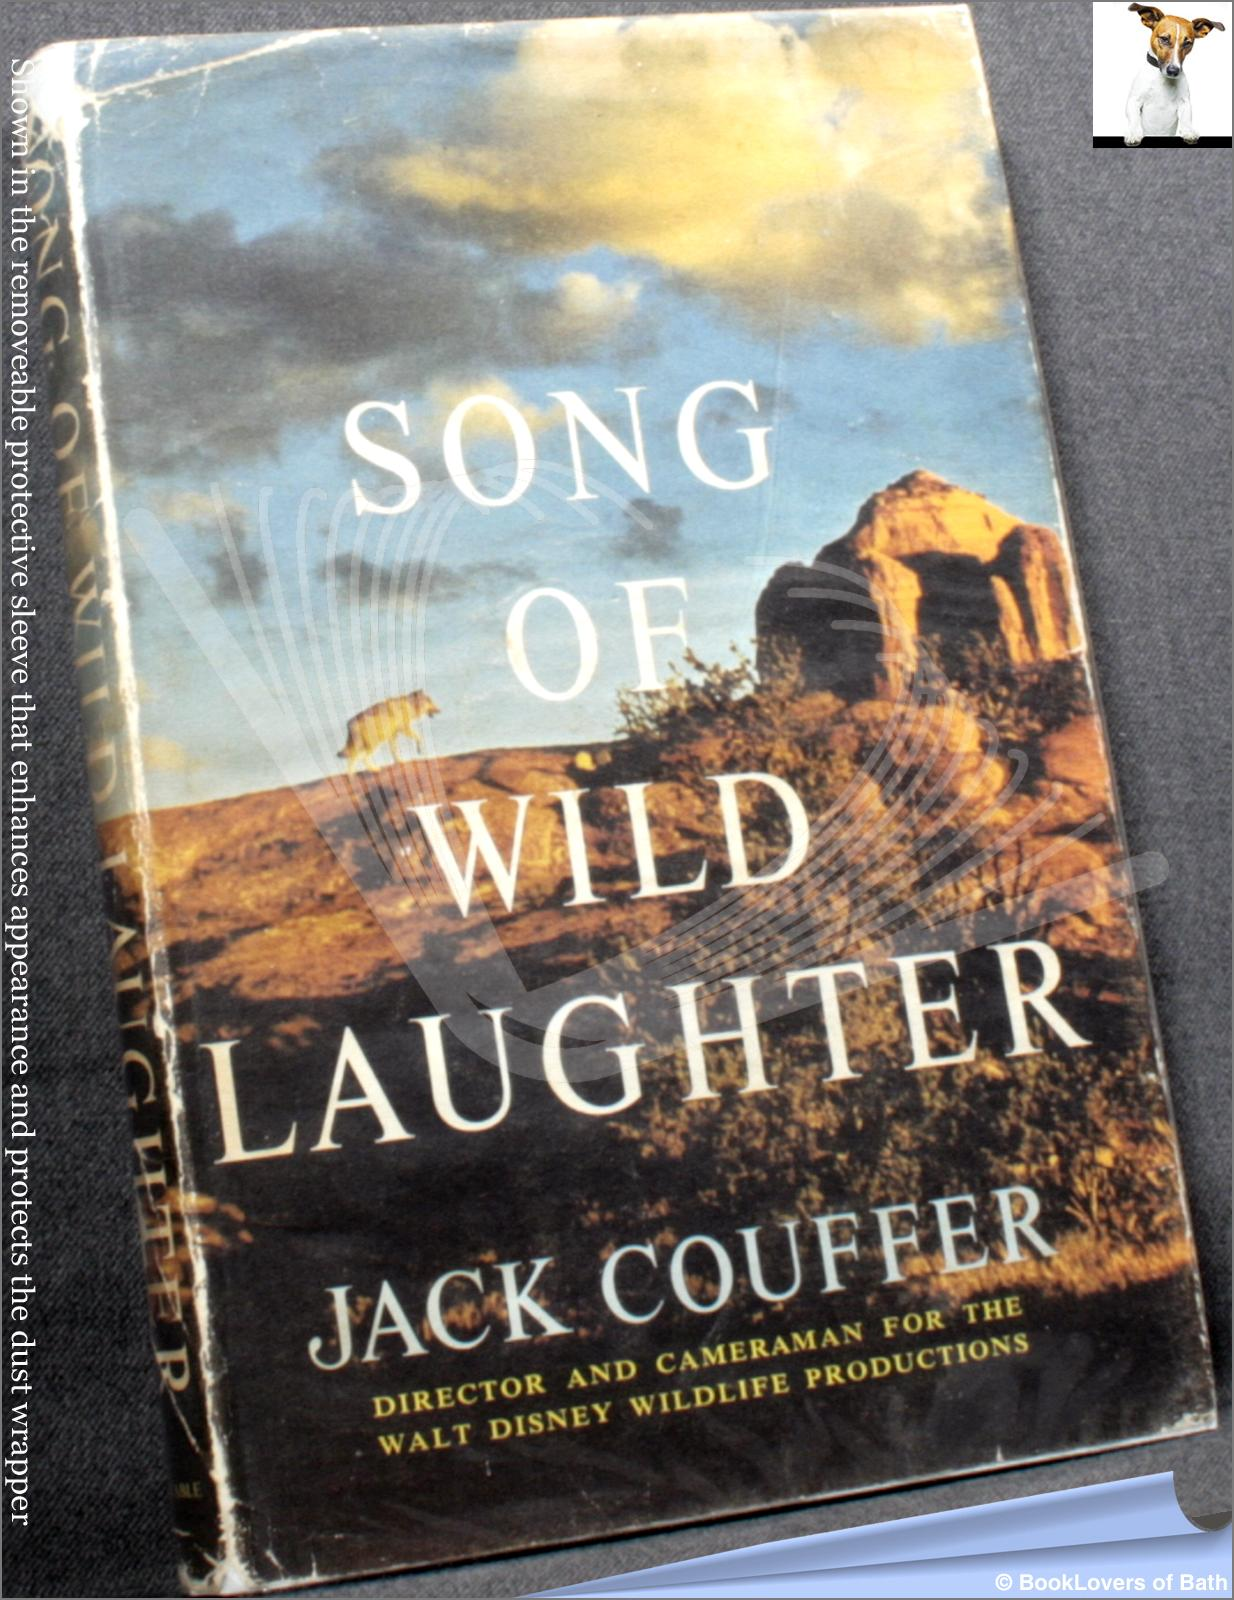 Song of Wild Laughter - Jack Couffer